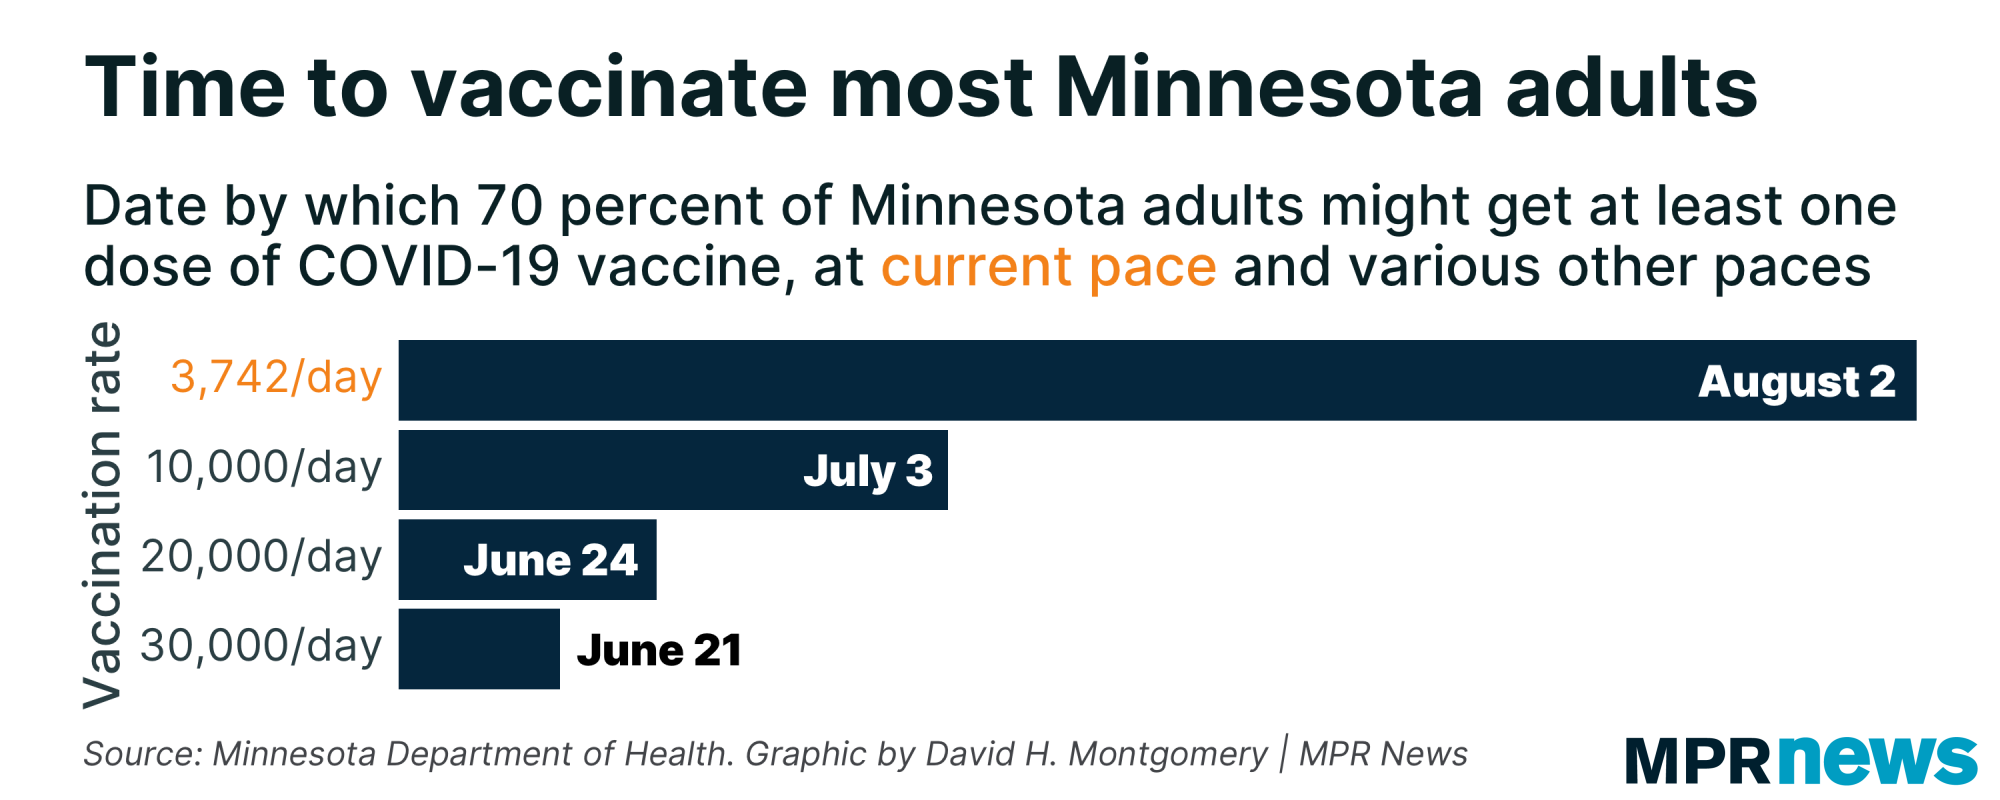 Time to vaccinate most Minnesota adults at various paces